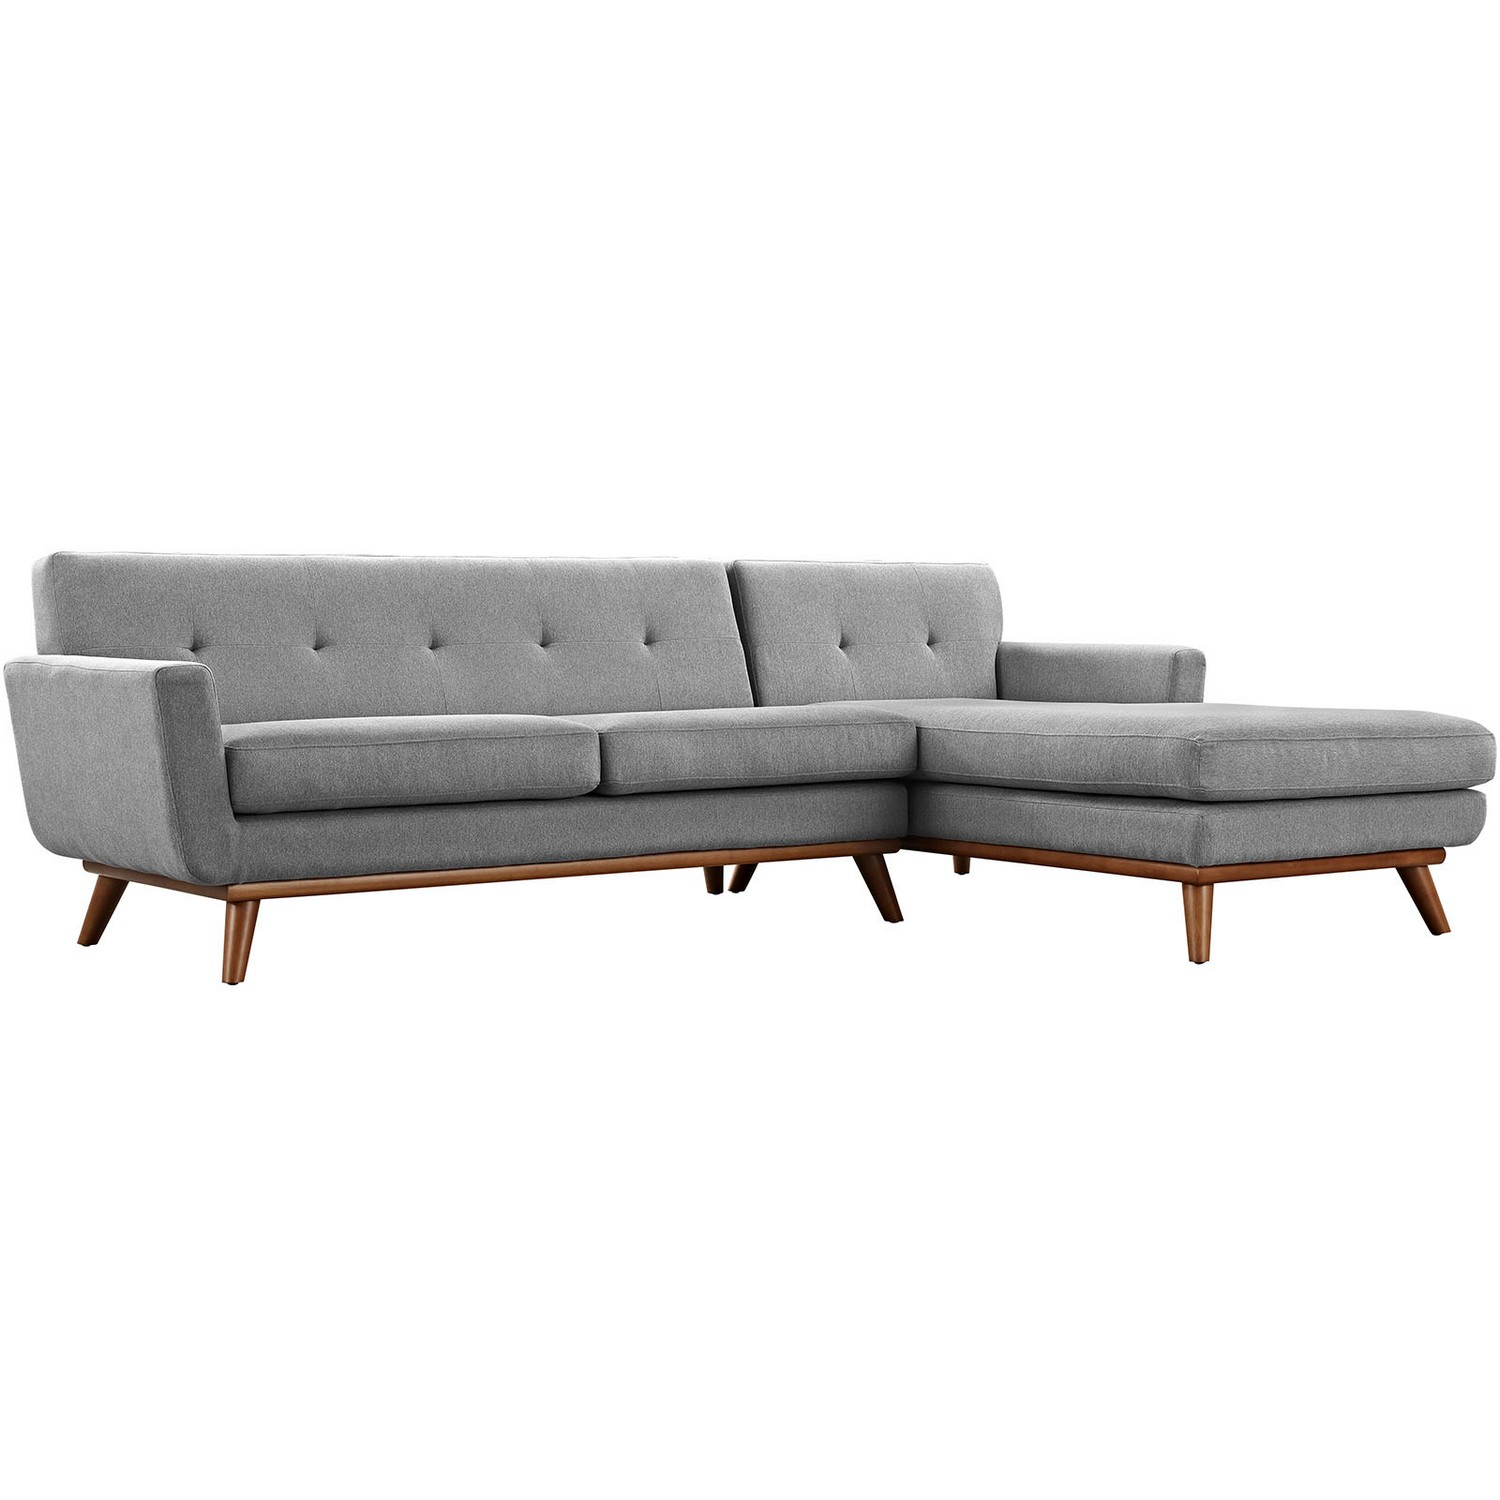 Modway Engage Right-Facing Sectional Sofa - Expectation Gray